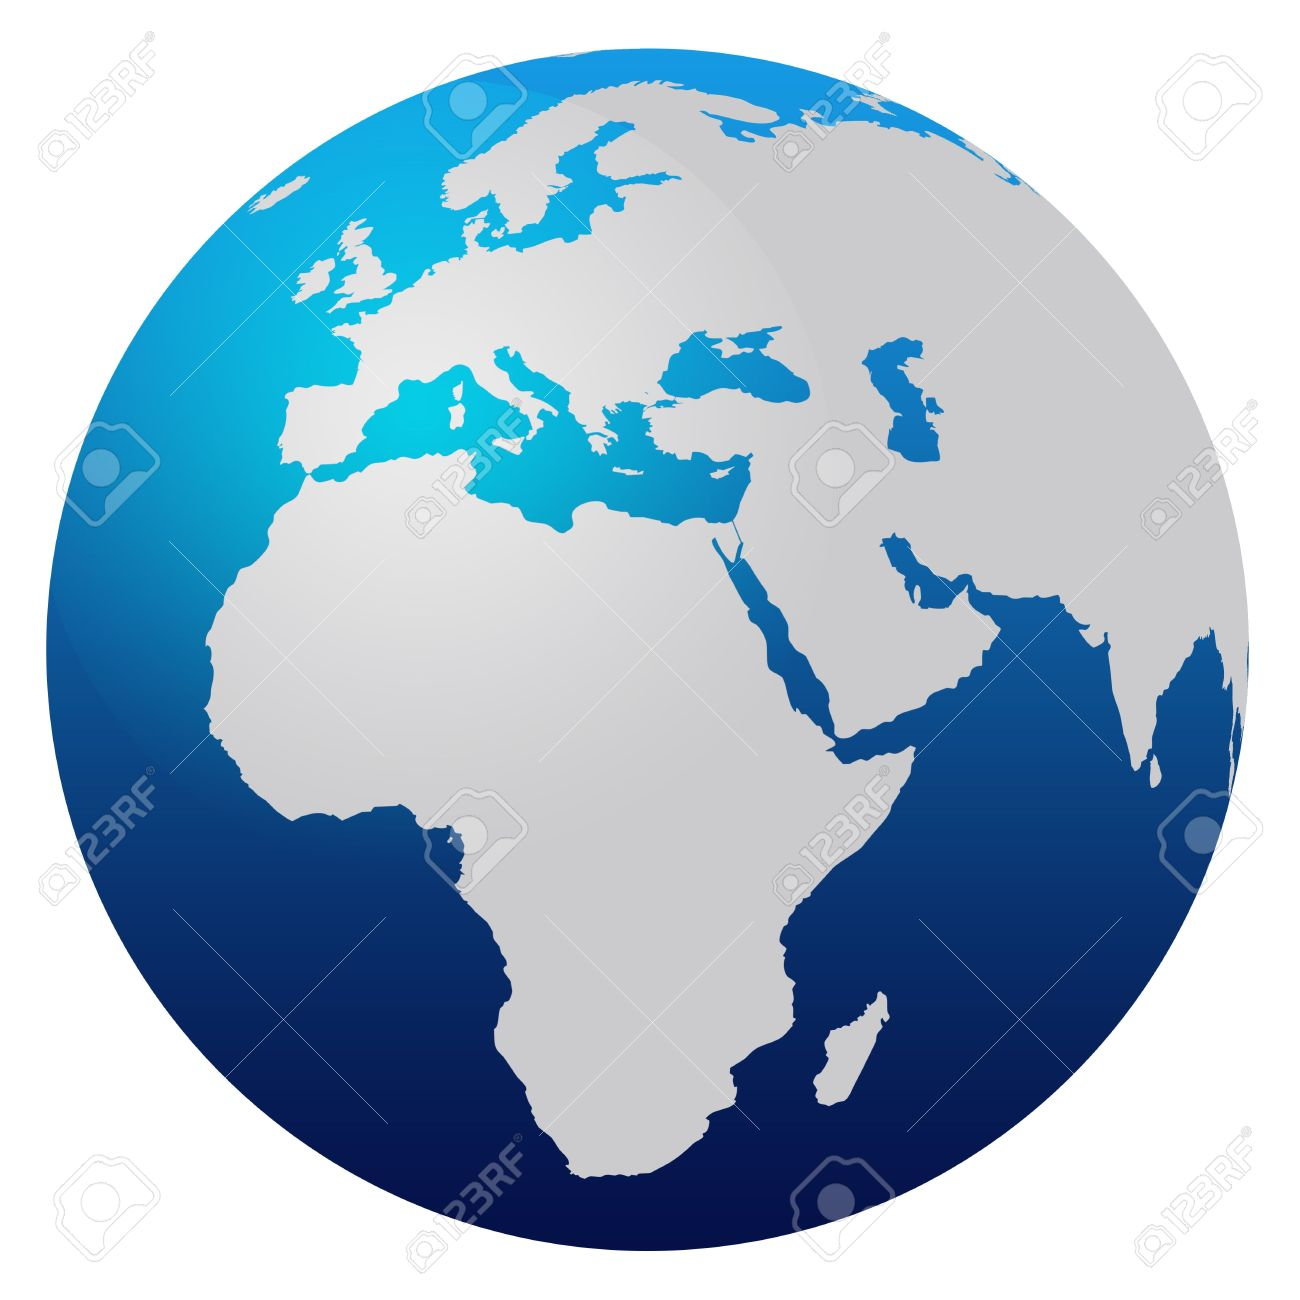 World map round clipart vector free stock World Map Blue Globe - Europe And Africa Stock Photo, Picture And ... vector free stock